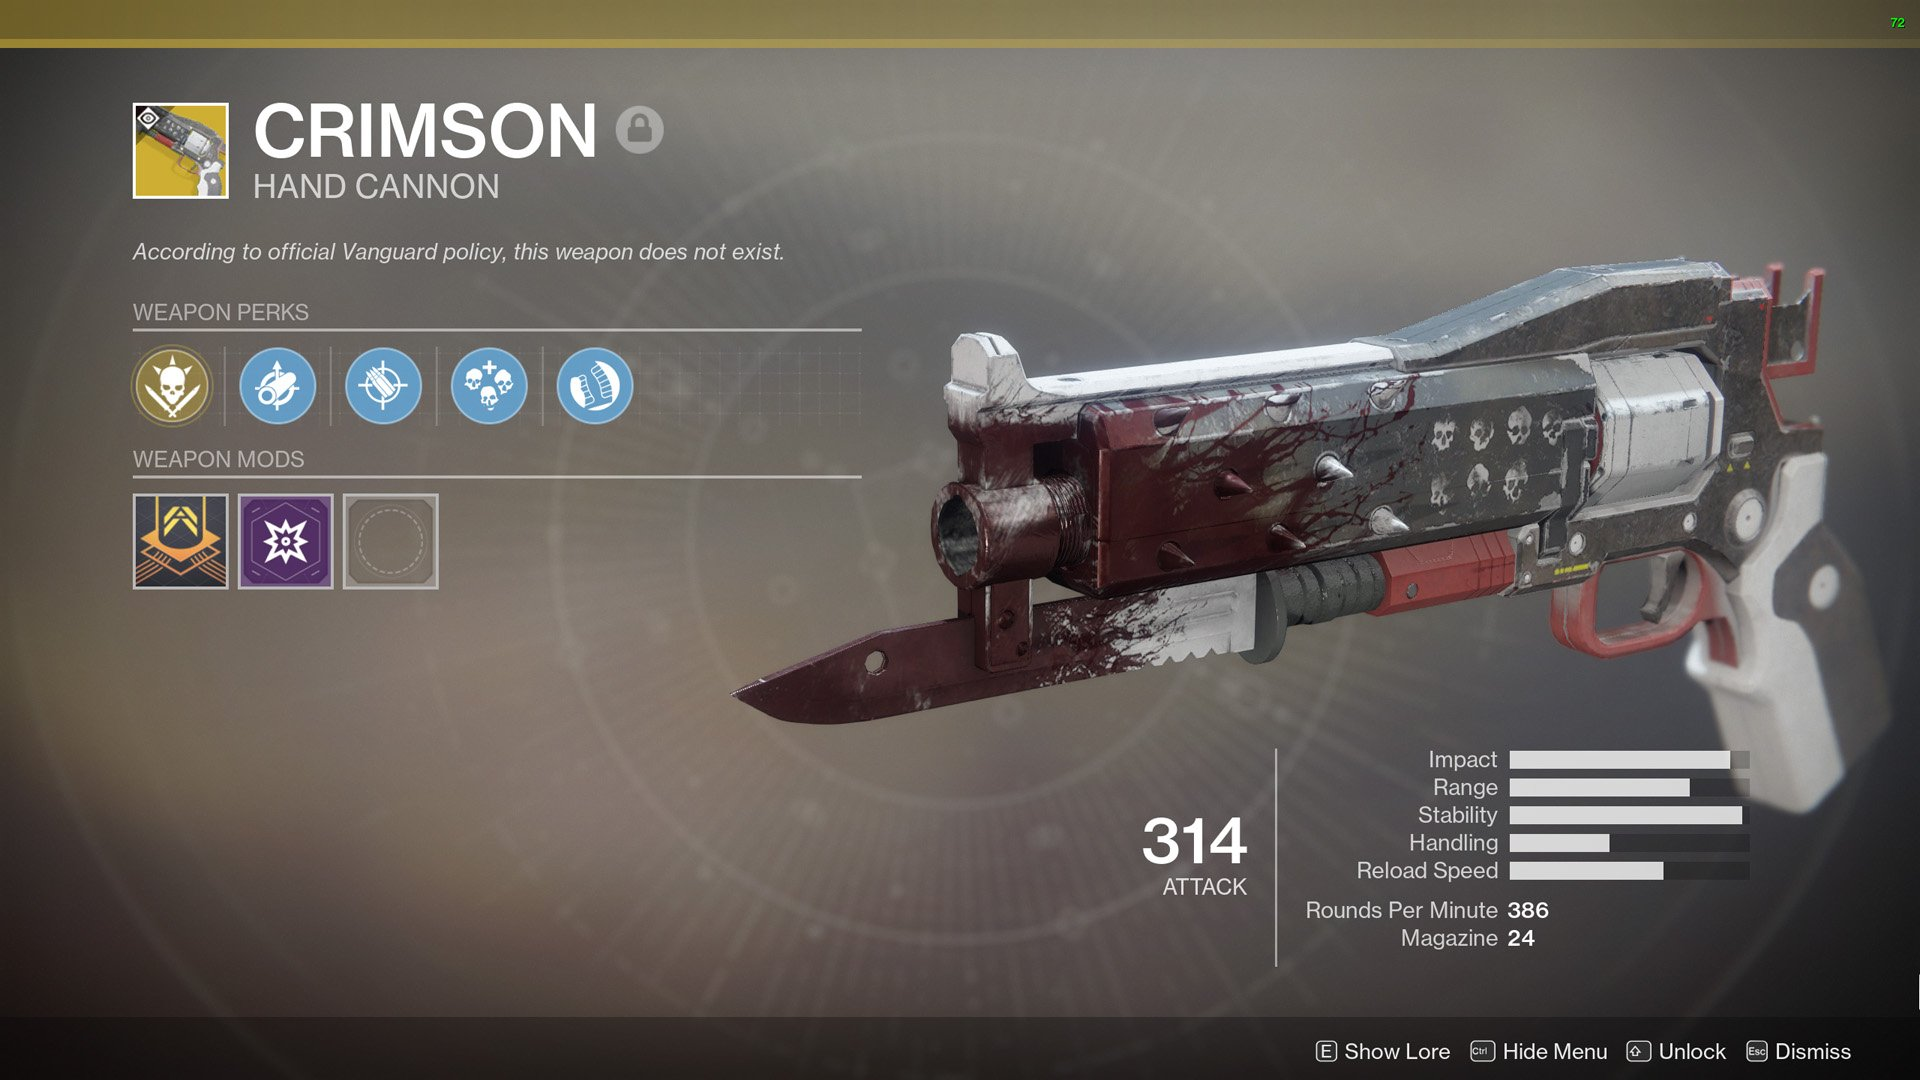 During the week of January 25, you can pick up the Crimson Exotic hand cannon from Xur for 29 Legendary Shards.